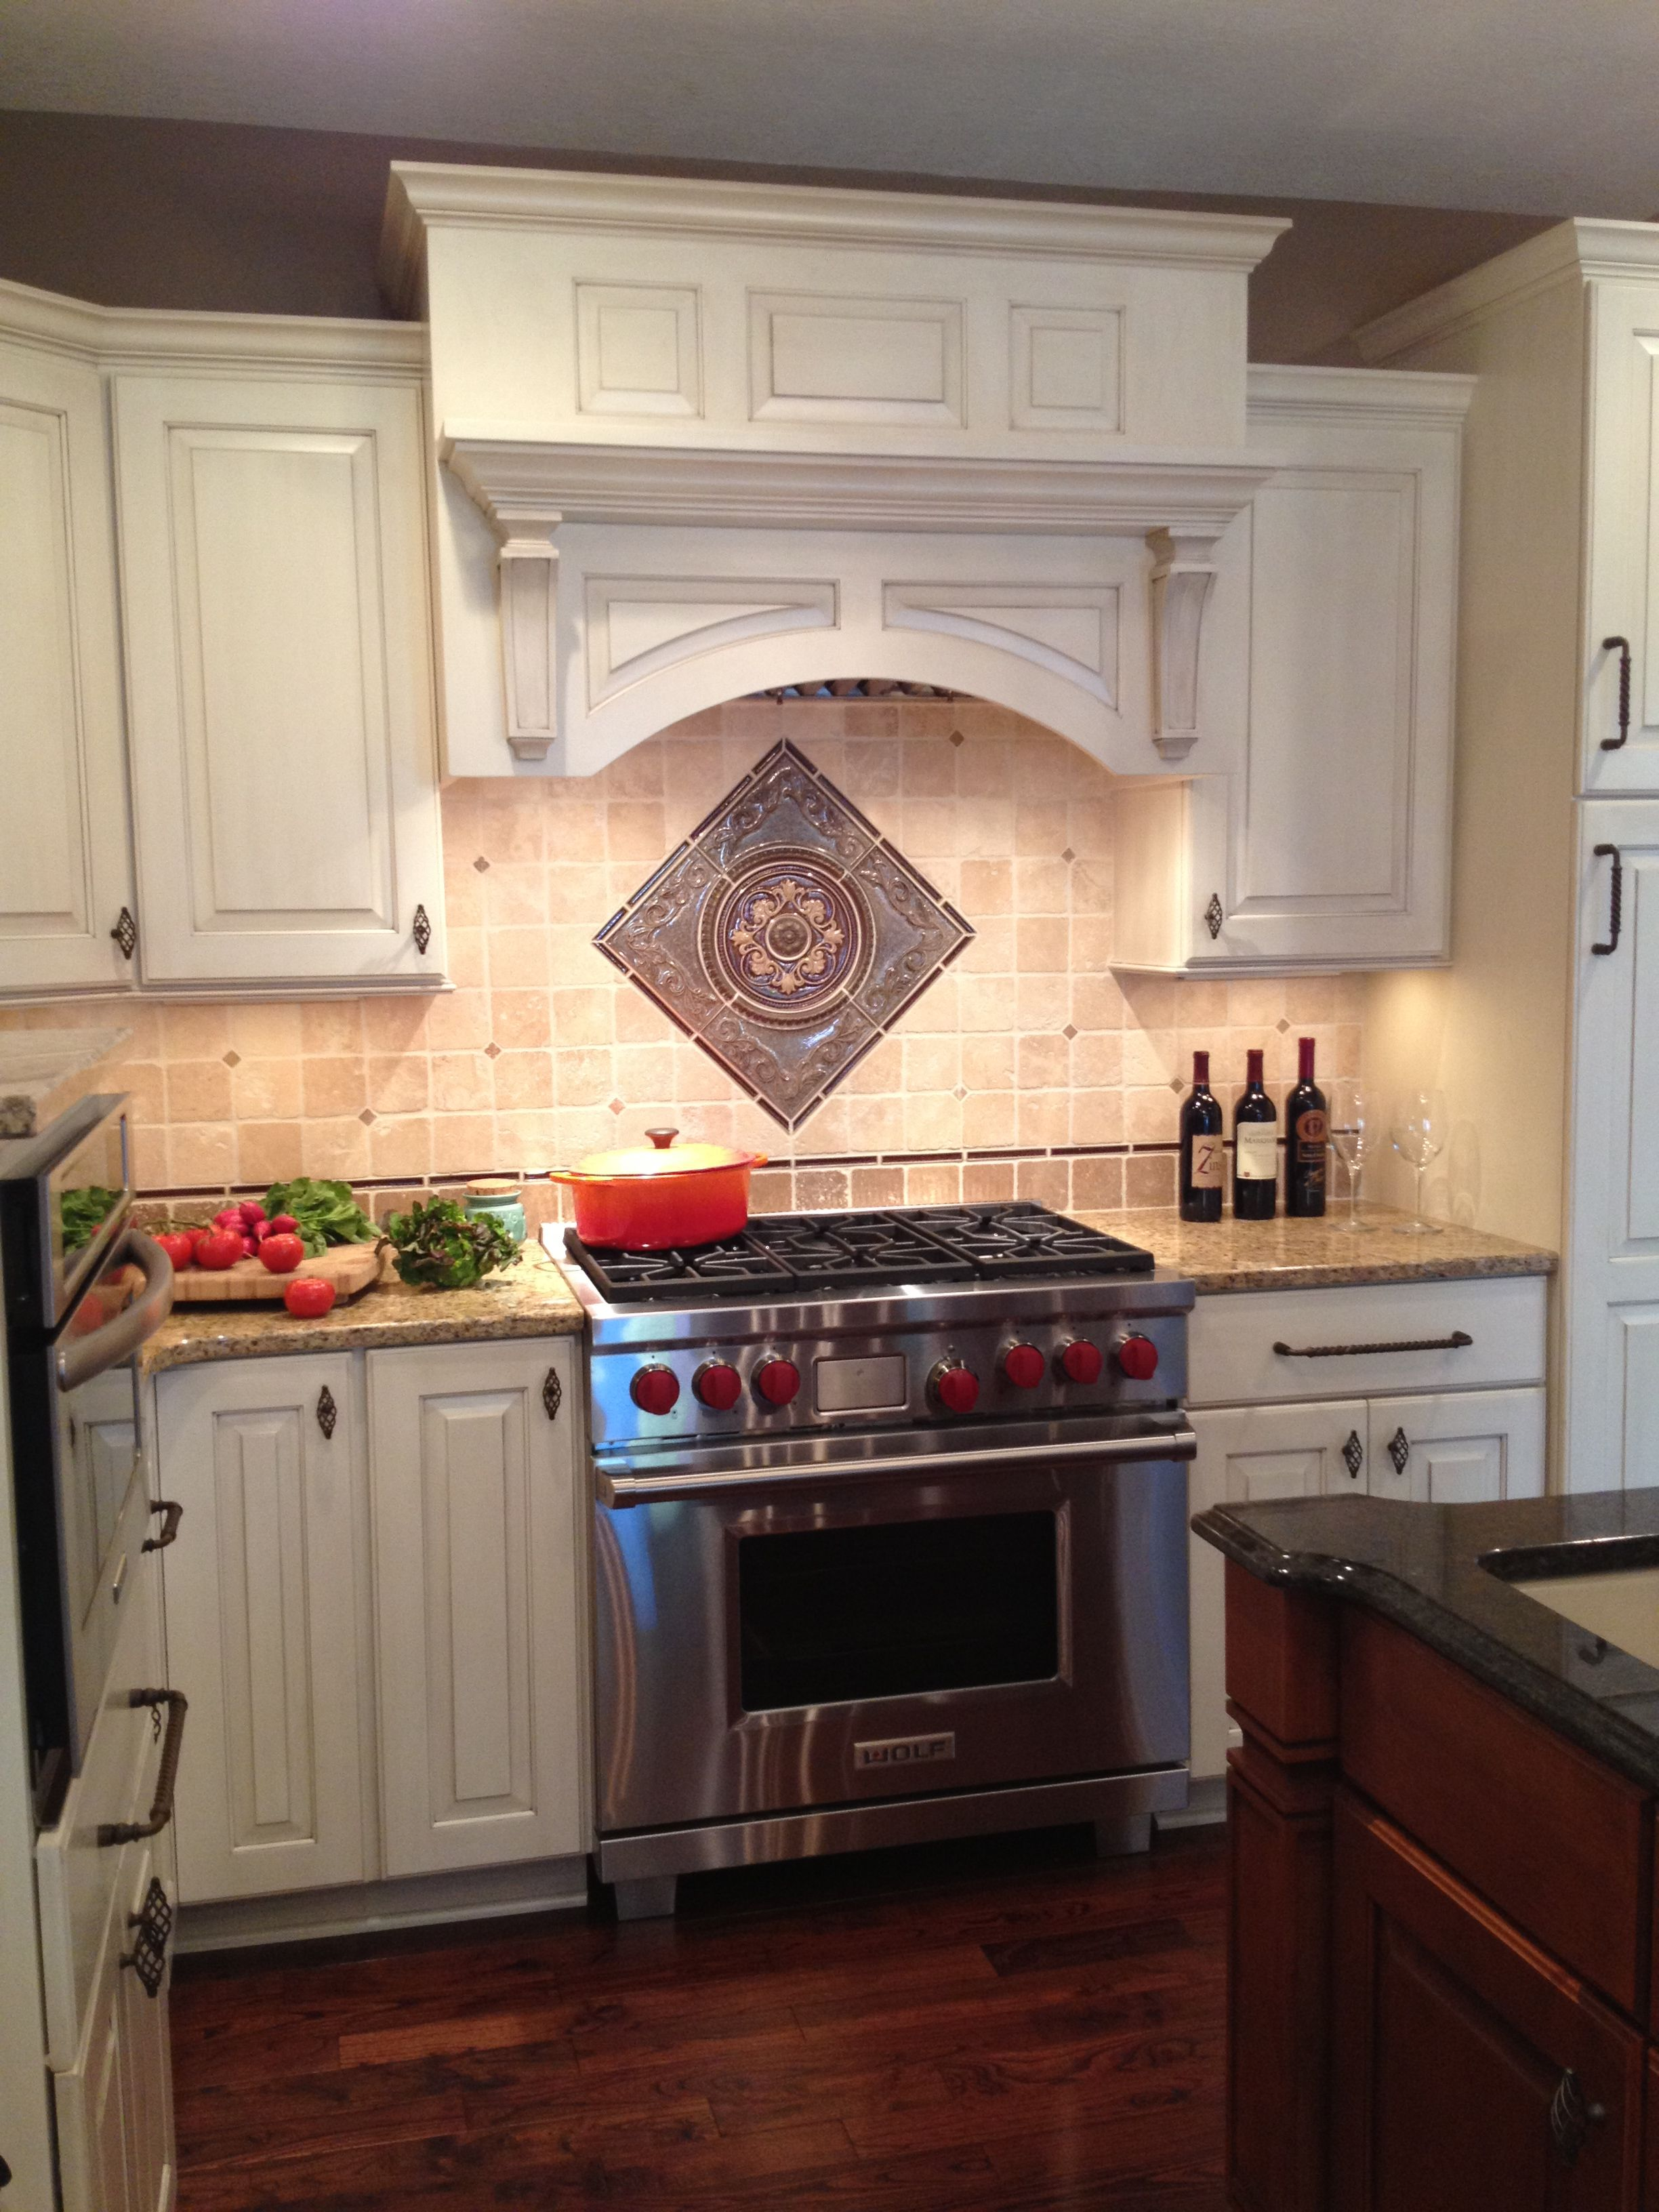 Tumbled Stone Backsplash Kitchen Powell Ohio Kitchen Remodel Features A Tumbled Stone Backsplash